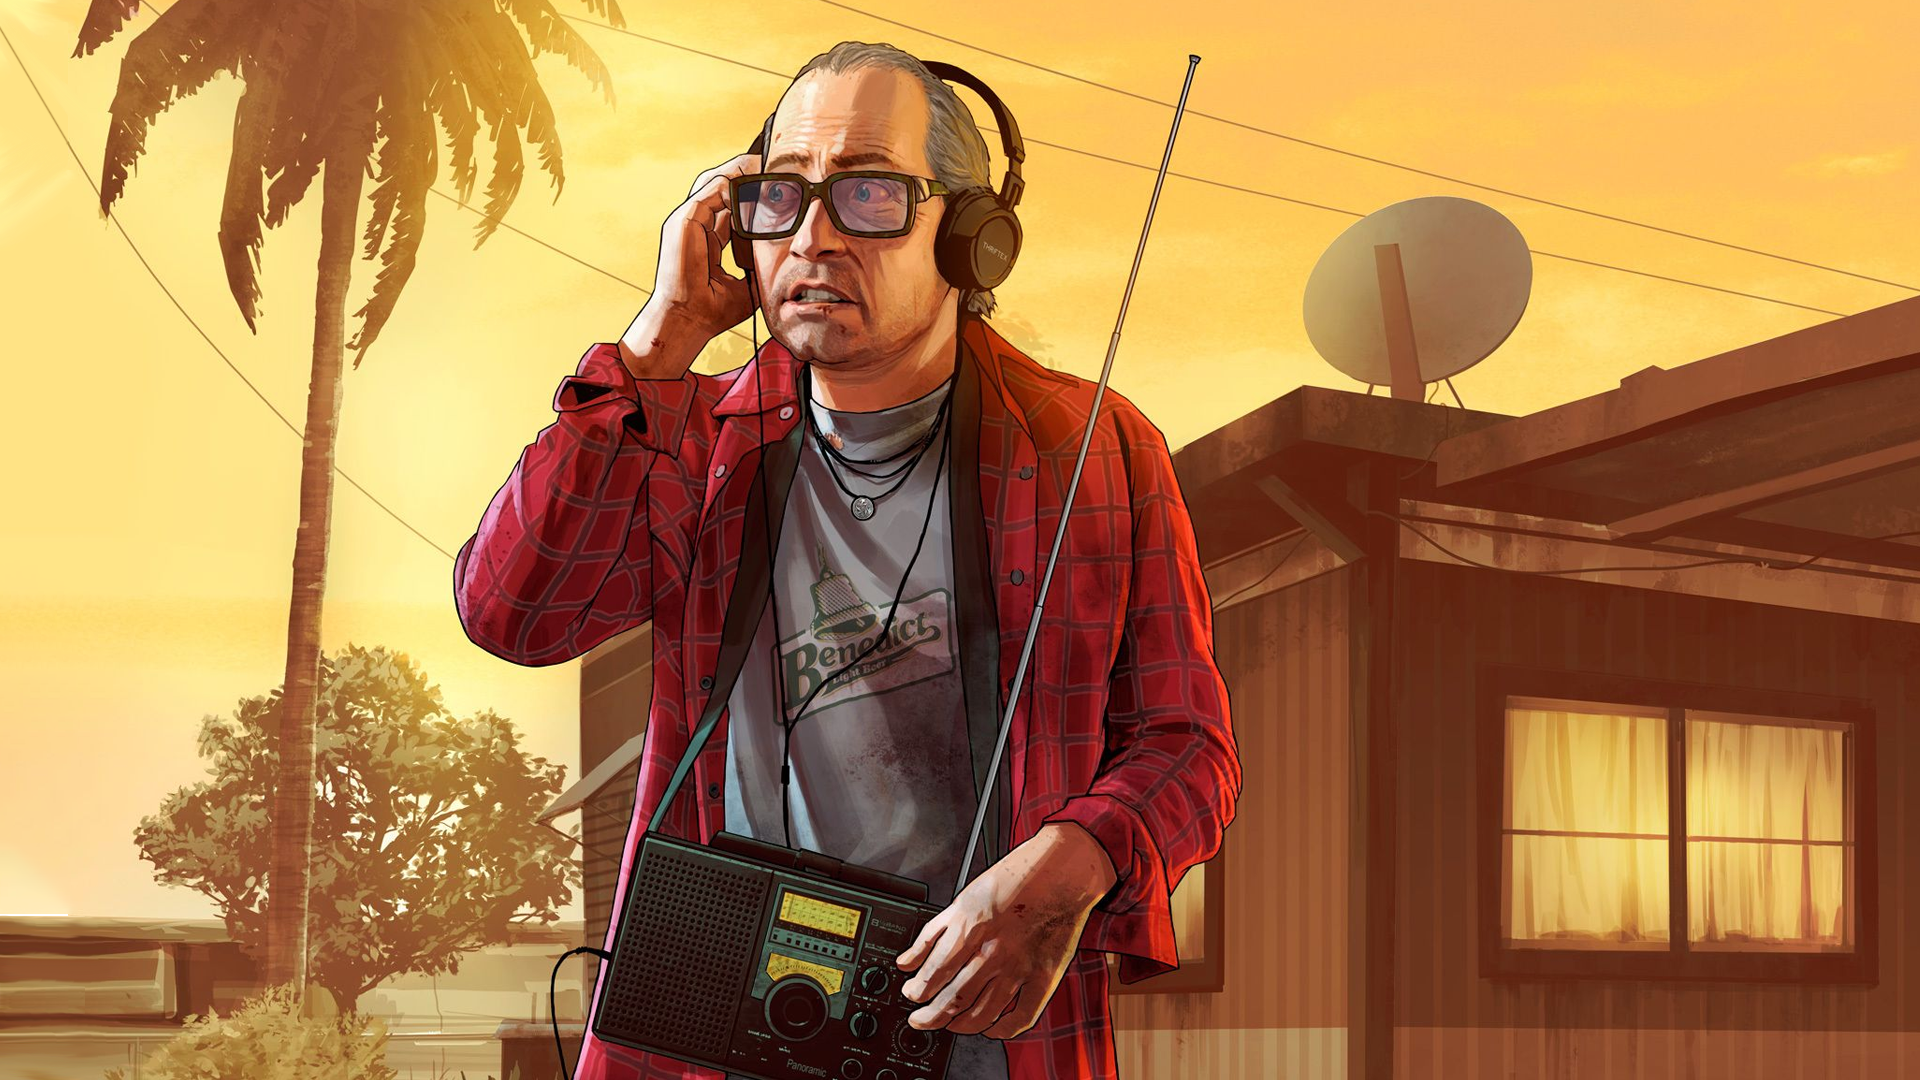 Just How Accurate Were All Those GTA V Rumours And Leaks?